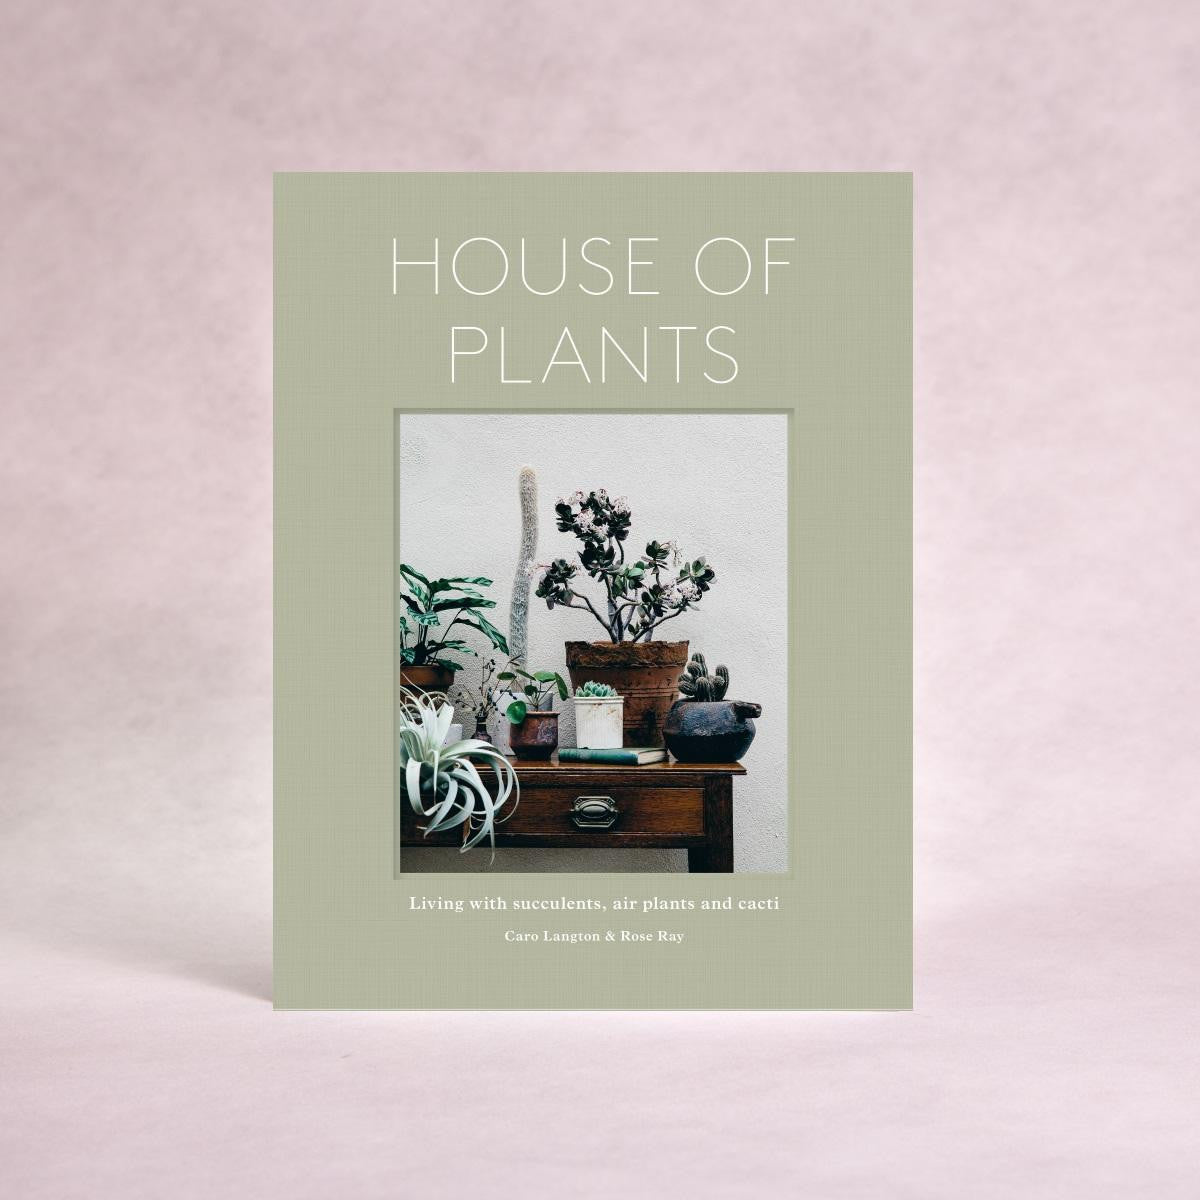 House of Plants | By Rose Ray & Caro Langton - Book - Throw Some Seeds - Australian gardening gifts and eco products online!